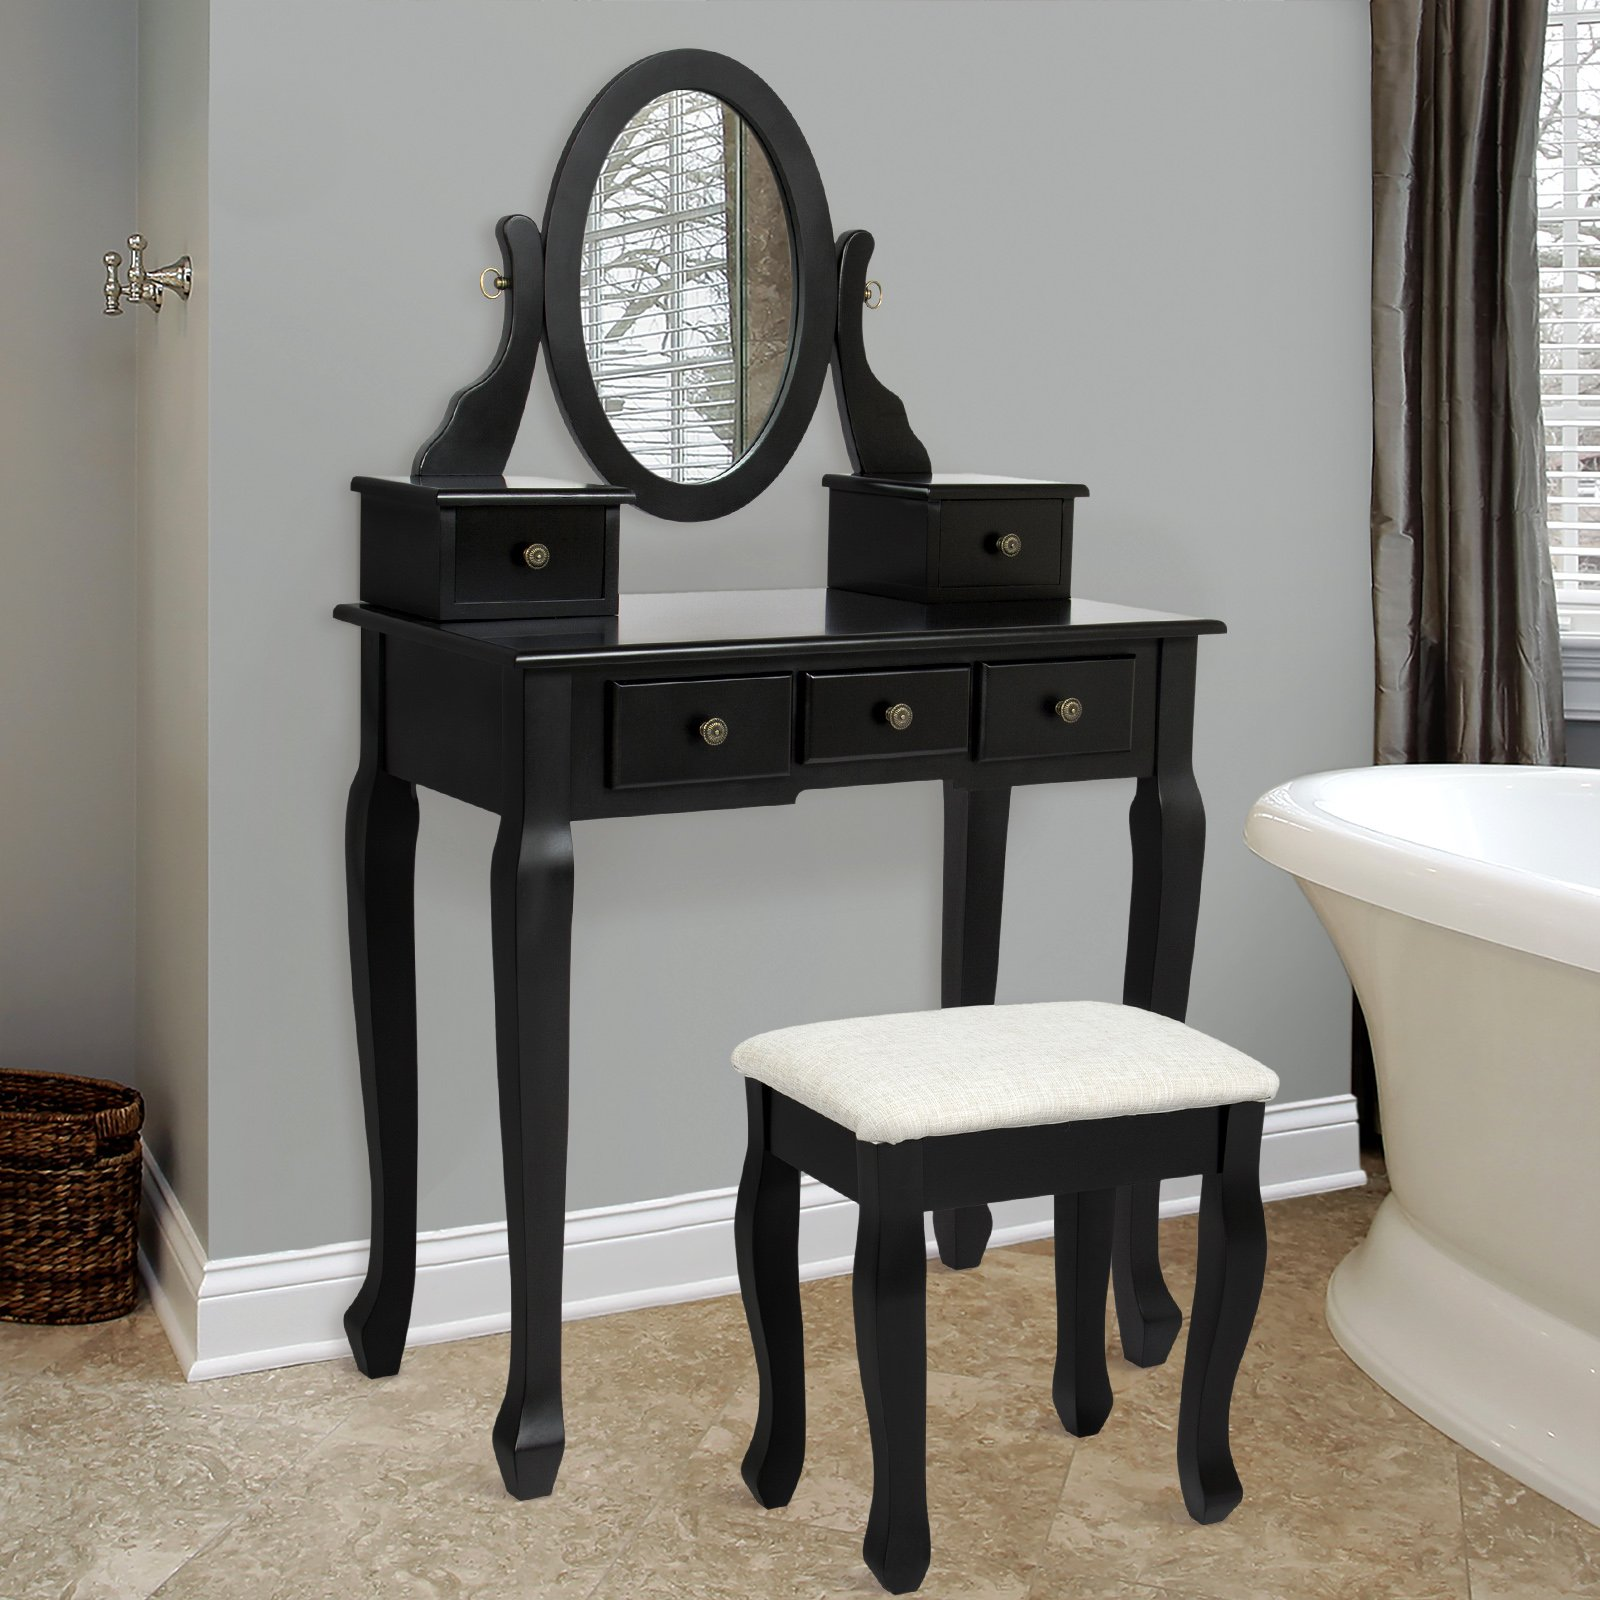 Best Choice Products Vanity Table and Stool Set w/Adjustable Oval Mirror, 5 Drawers, Padded Seat - Black